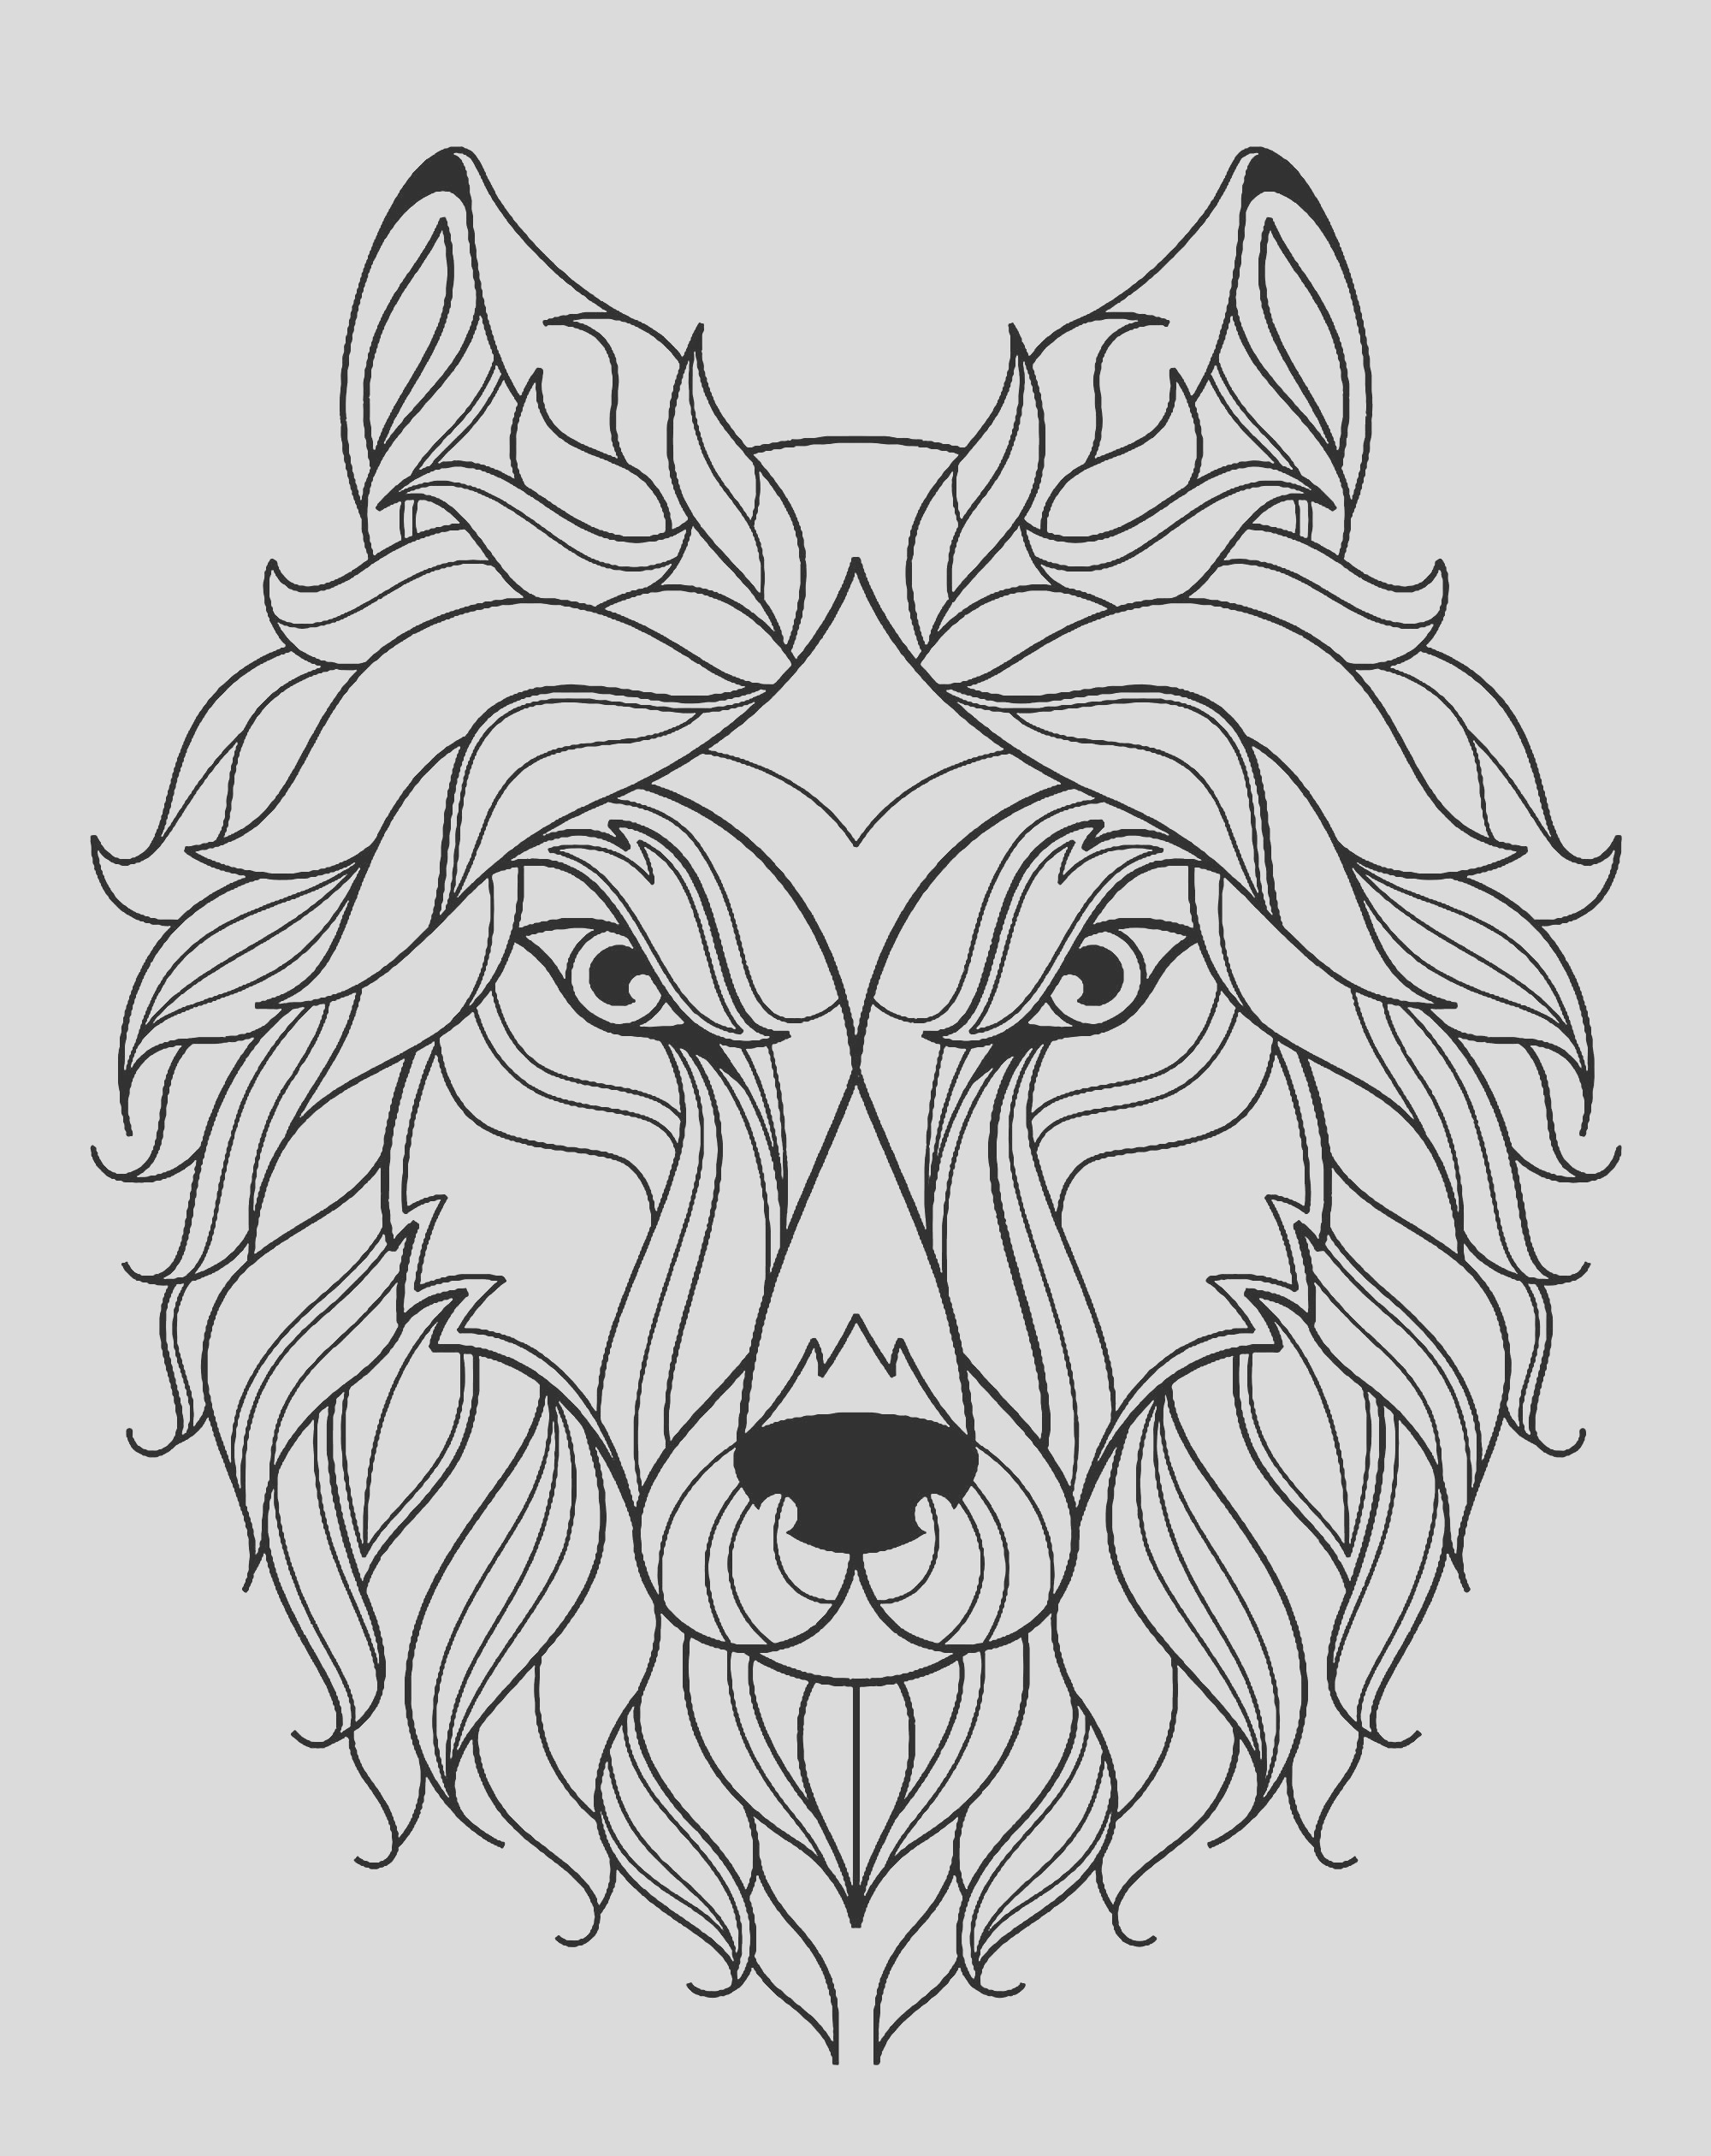 wolf image=wolf Coloring pages for children JustColor kids wolf 1